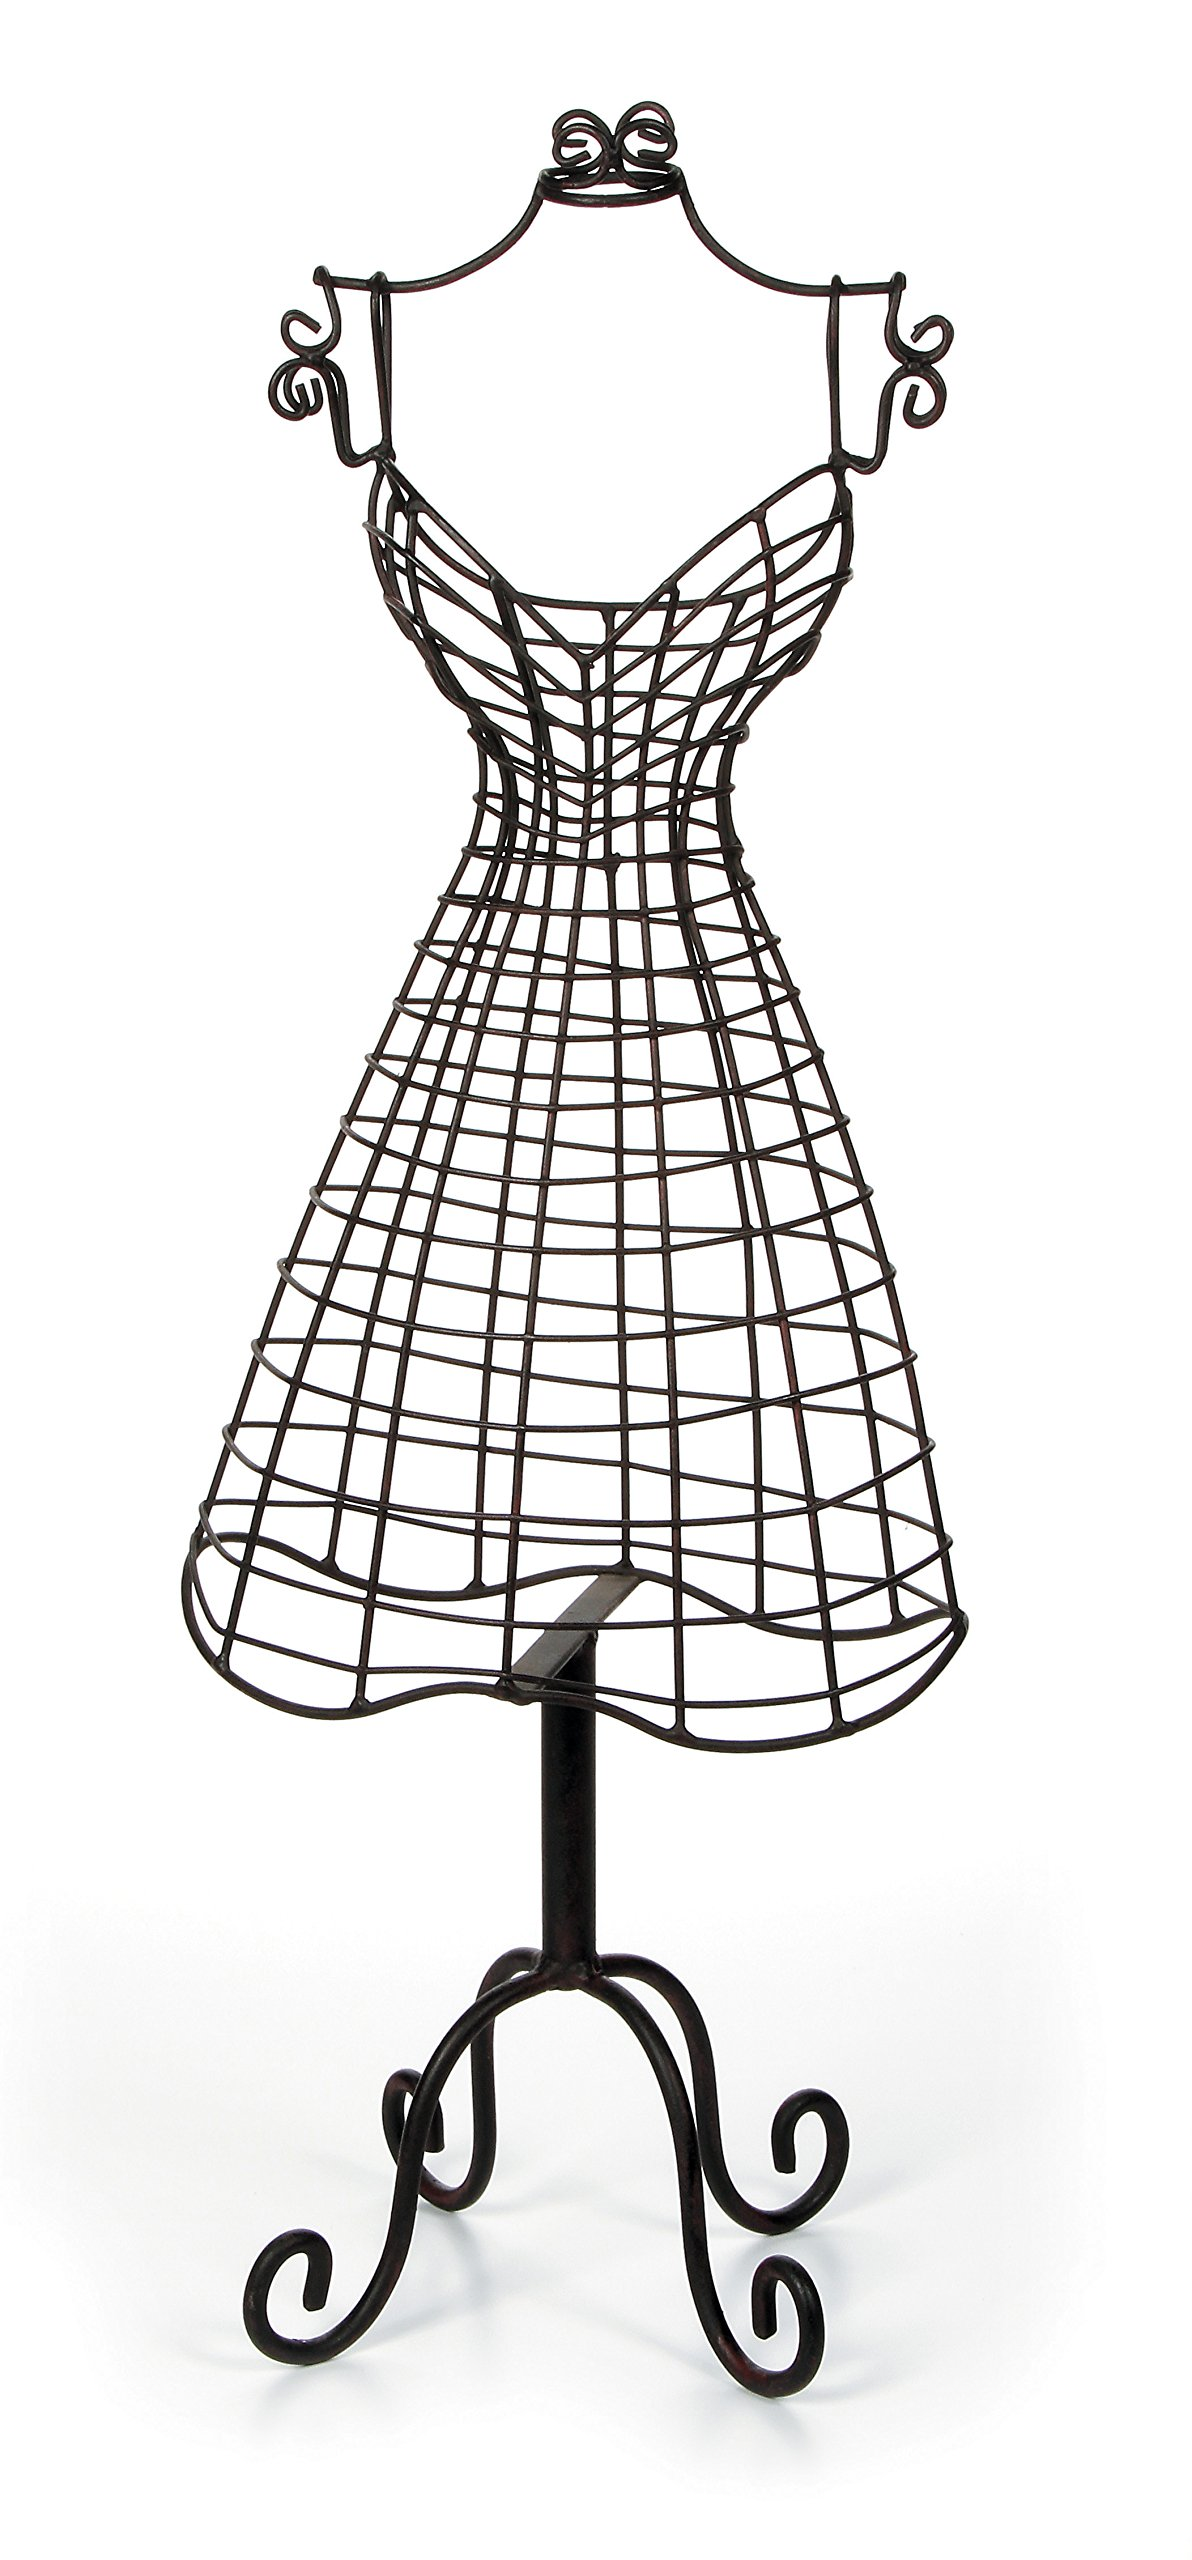 Darice Metal Dress Form Jewelry Display